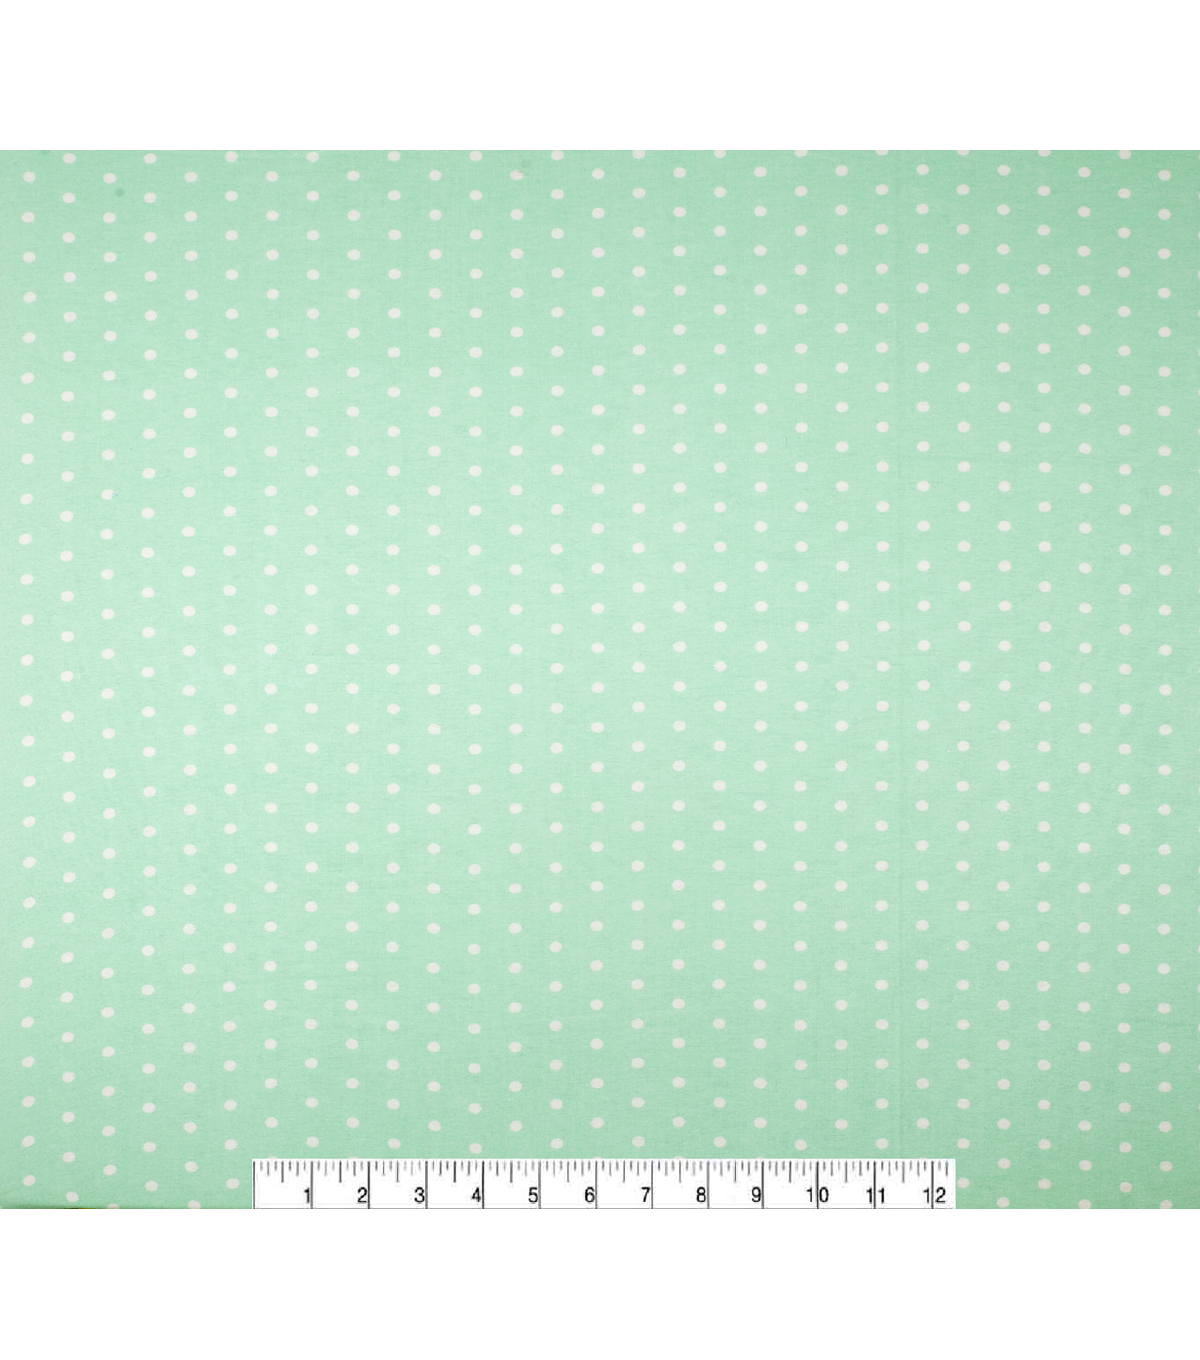 Super Snuggle Flannel Fabric-Dots On Aqua